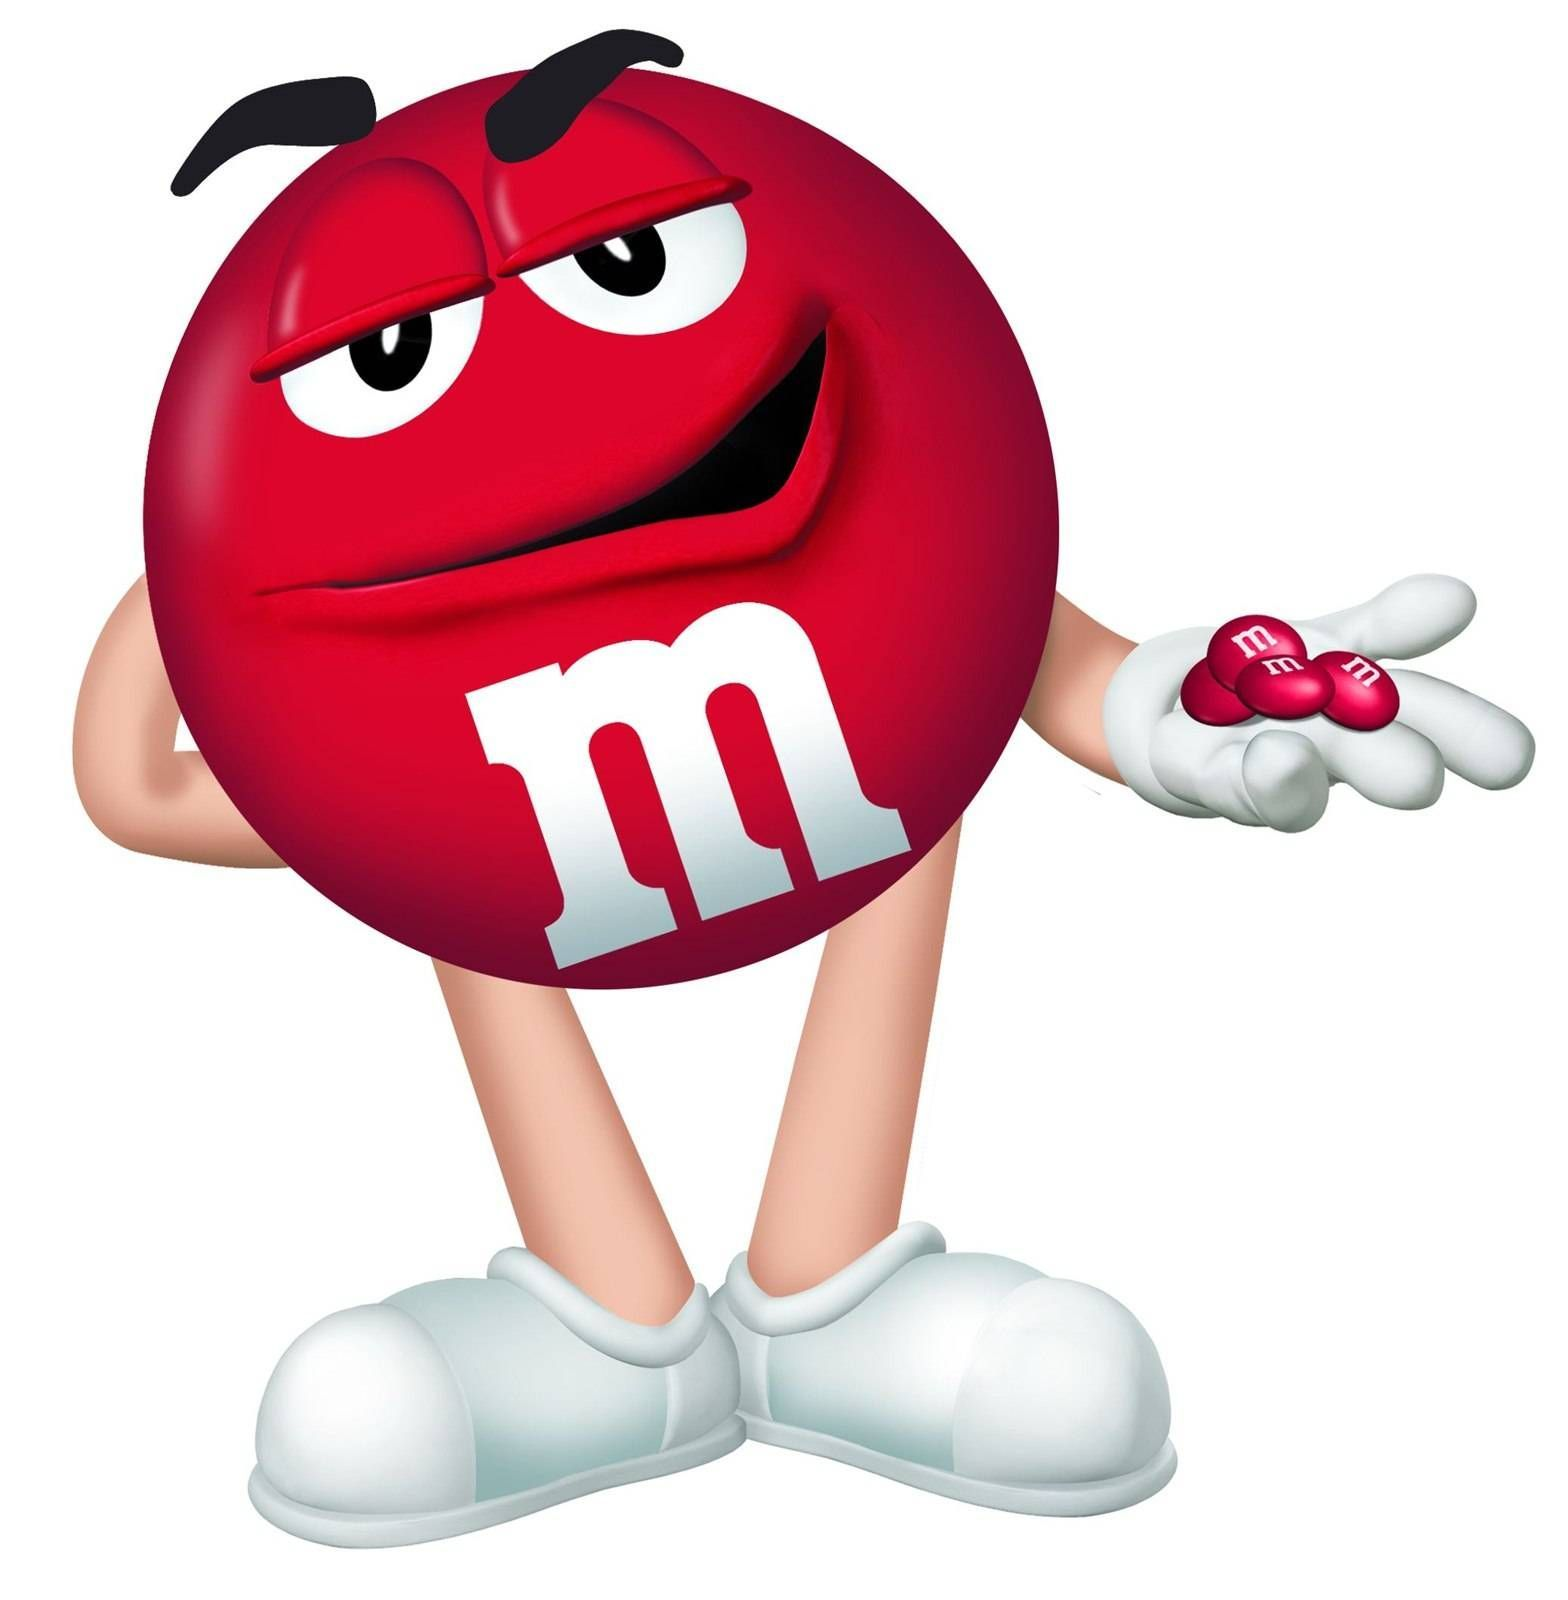 m & m candy clip art | red - m&m Picture | M&M Candy | Pinterest ...